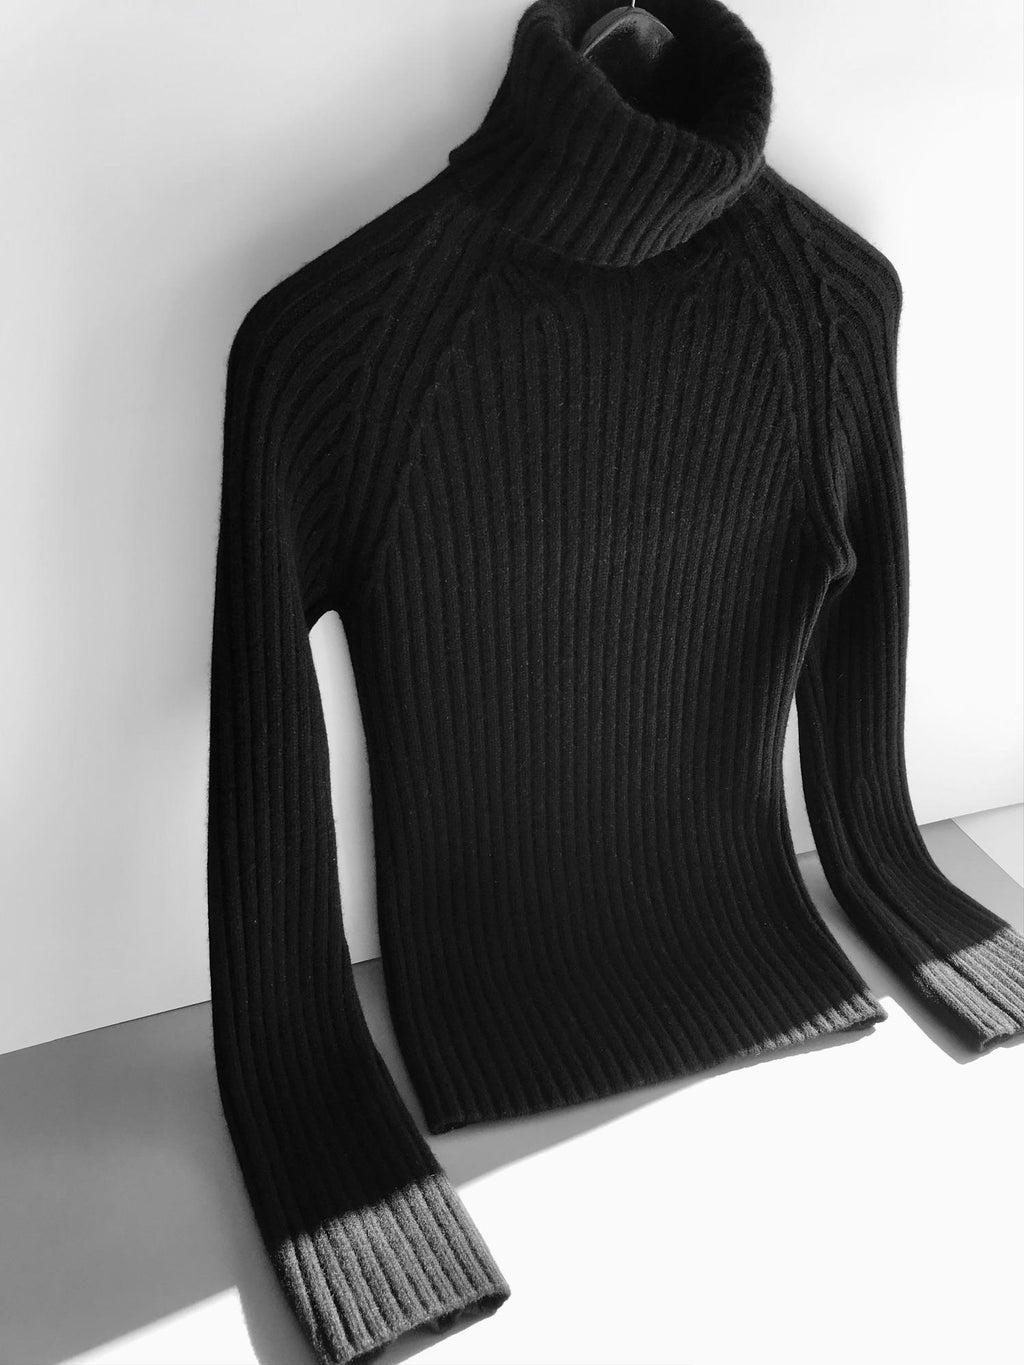 100% Cashmere Women's Black Turtleneck Jumper, Size S